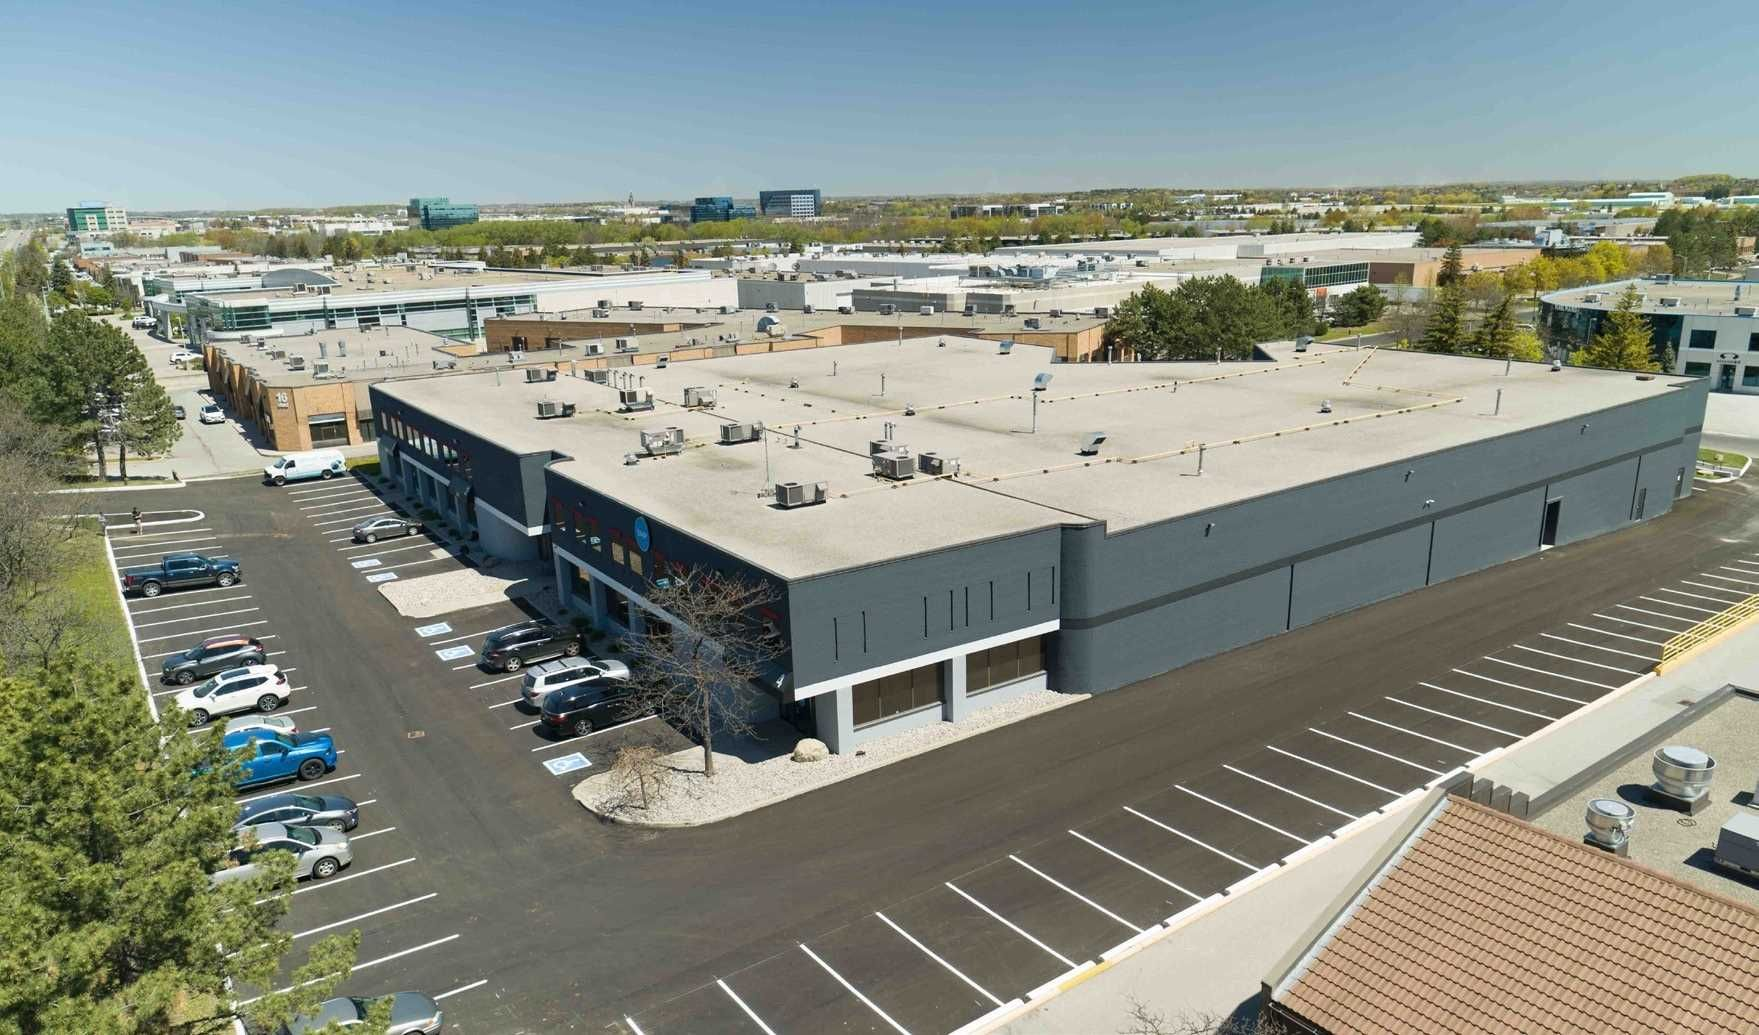 Main Photo: 9099 Leslie Street in Richmond Hill: Beaver Creek Business Park Property for sale : MLS®# N5260562